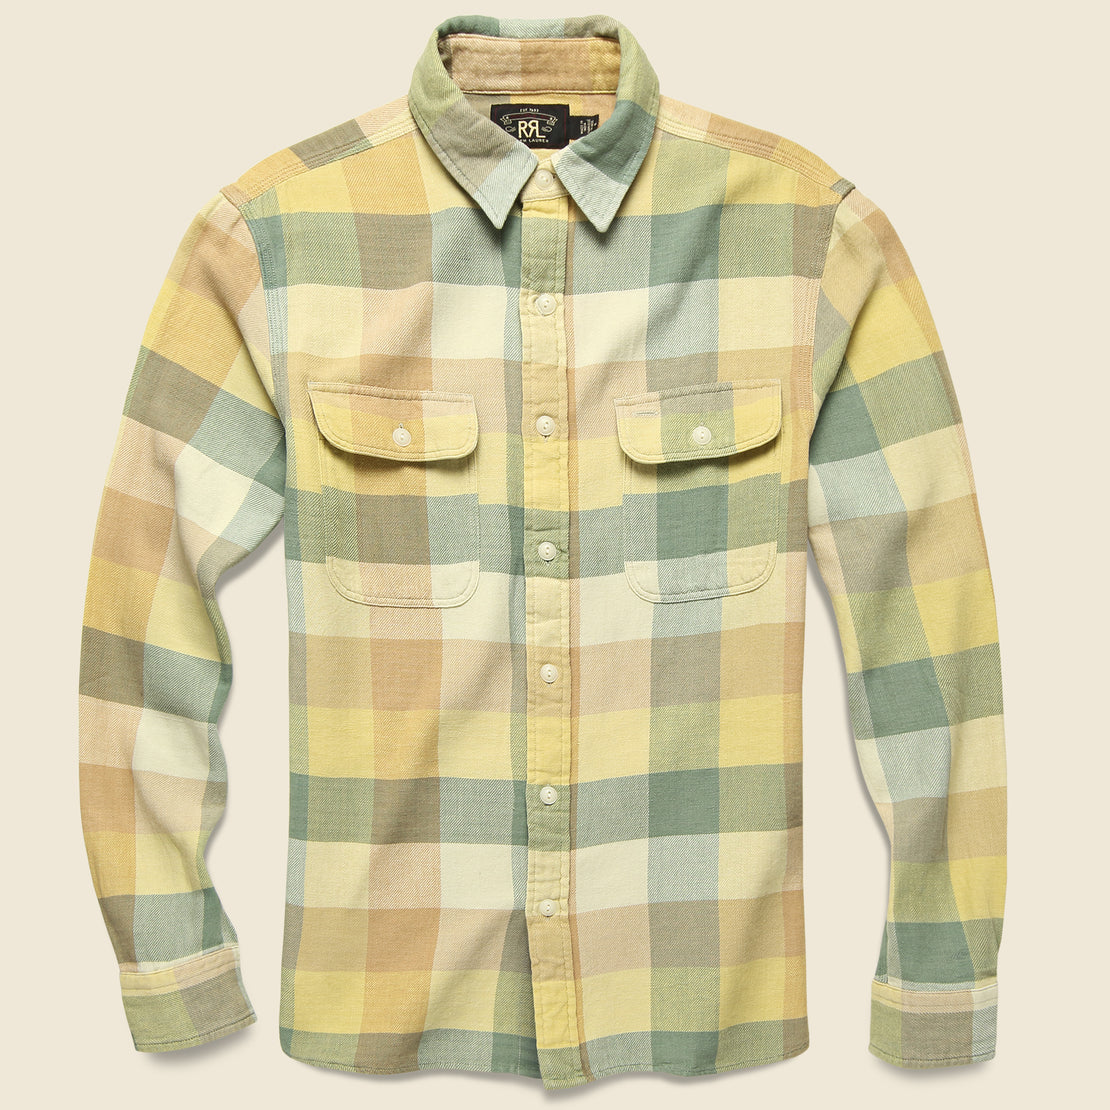 RRL Matlock Twill Workshirt - Yellow/Green